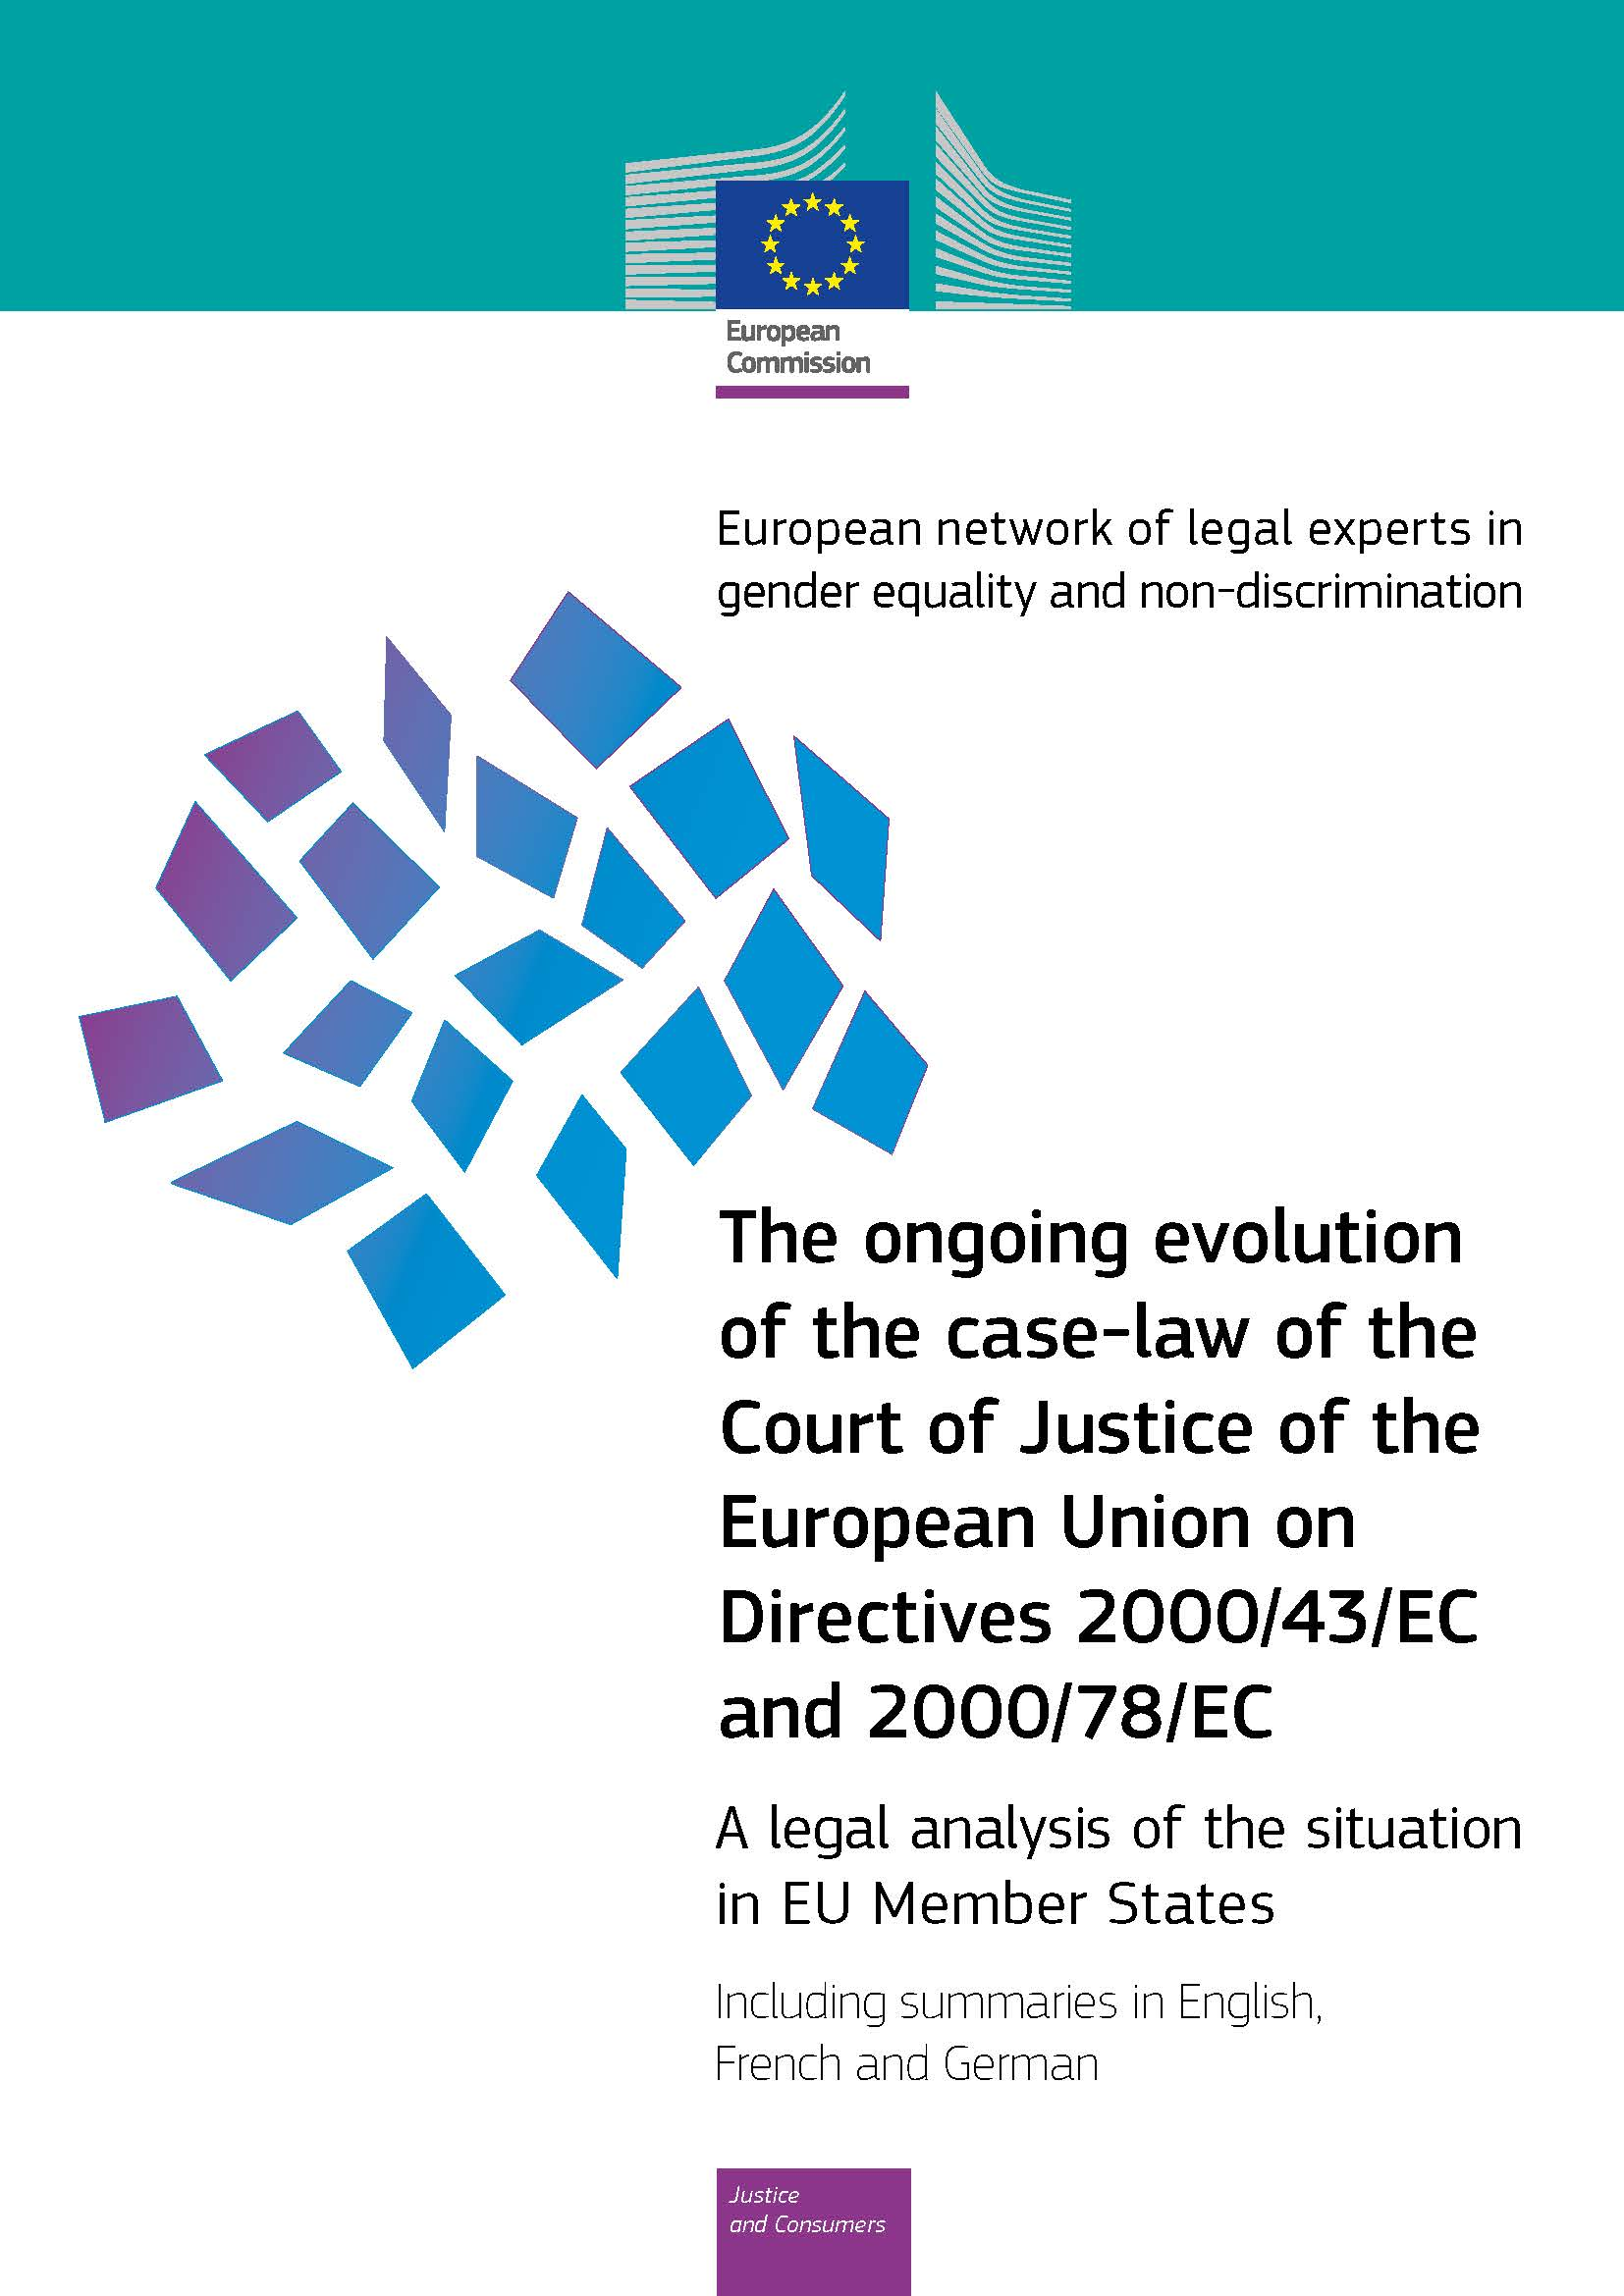 The ongoing evolution of the case-law of the Court of Justice of the European Union on Directives 2000/43/EC and 2000/78/EC (PDF 766 kB)